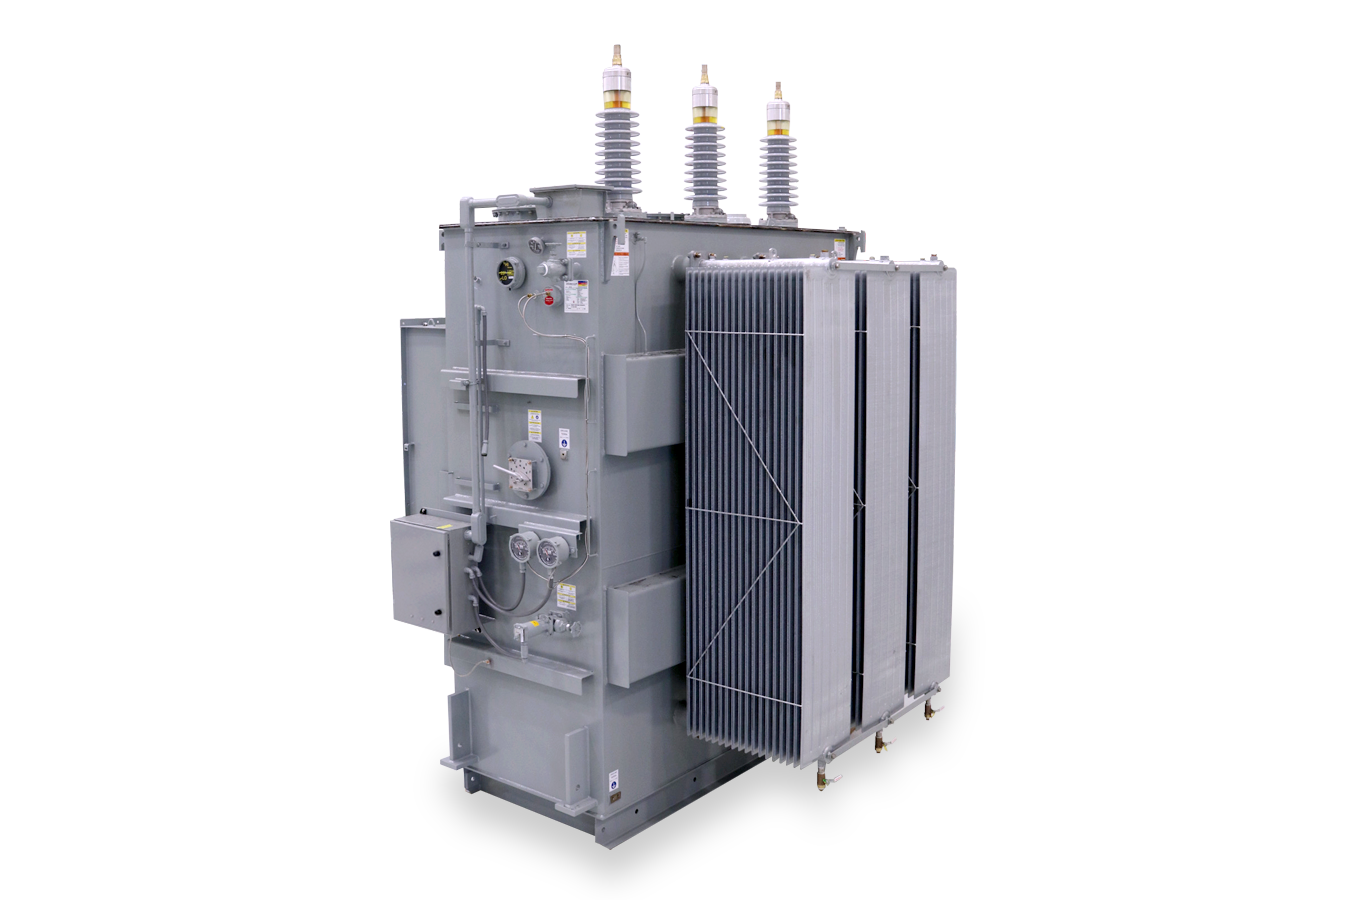 Static Frequency Converter Transformers - Niagara Power Transformer